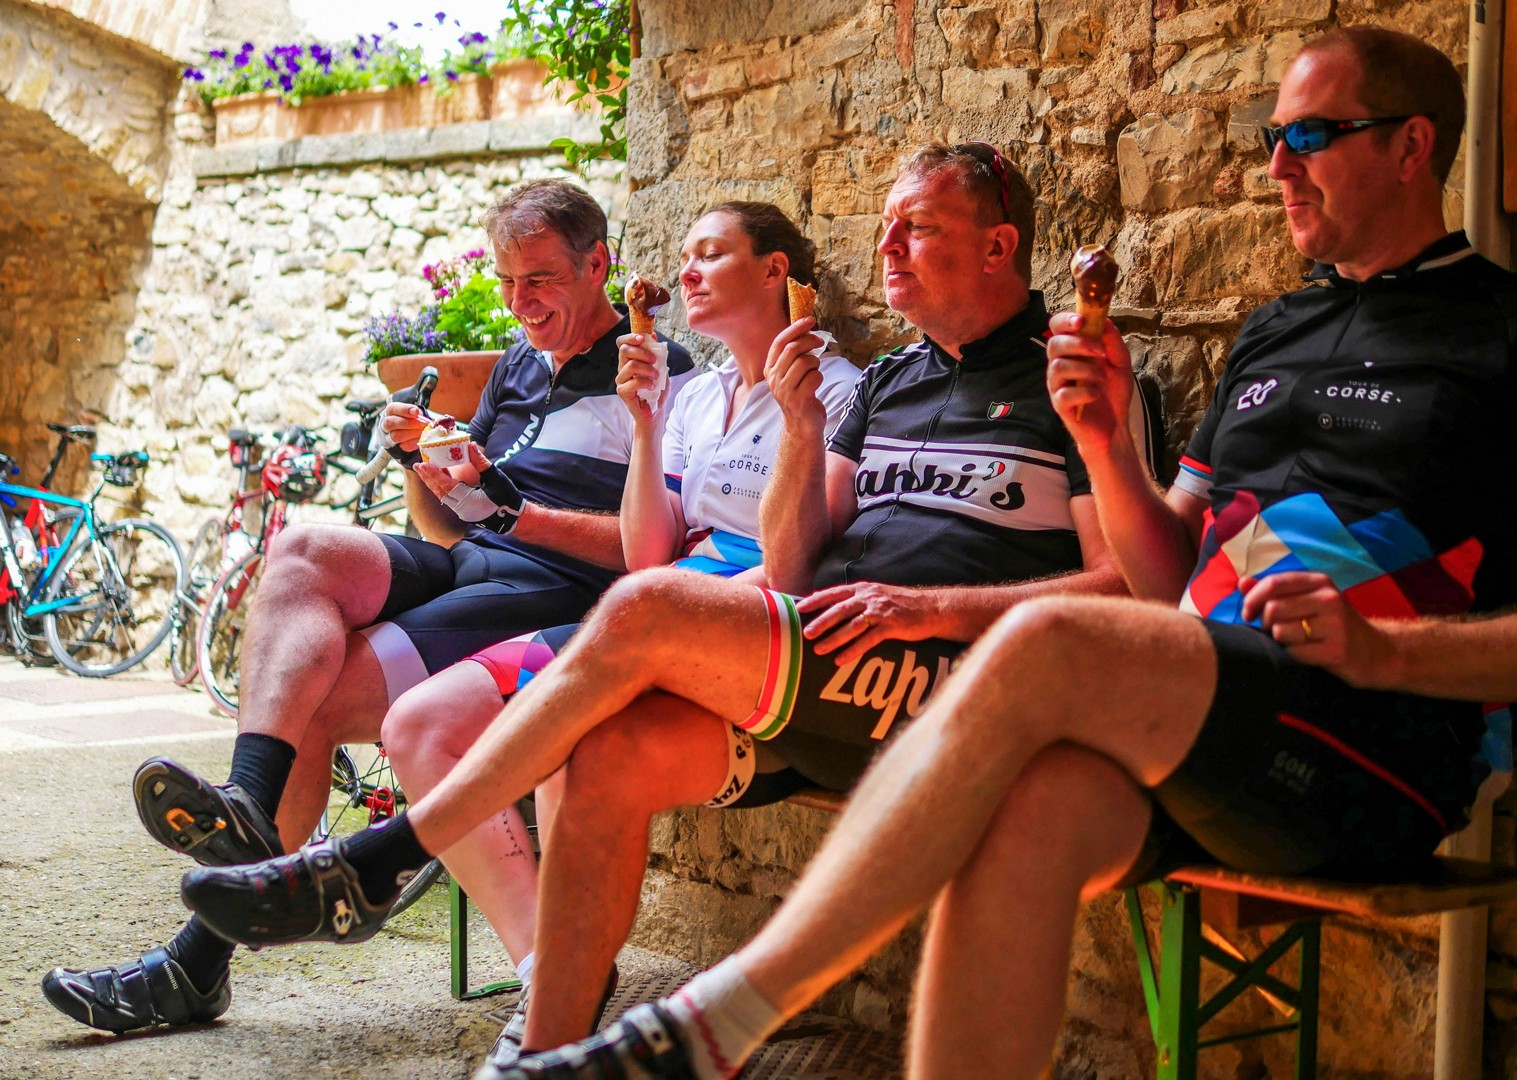 Team gelato.jpg - Italy - Tuscany - Giro della Toscana - Guided Road Cycling Holiday - Road Cycling